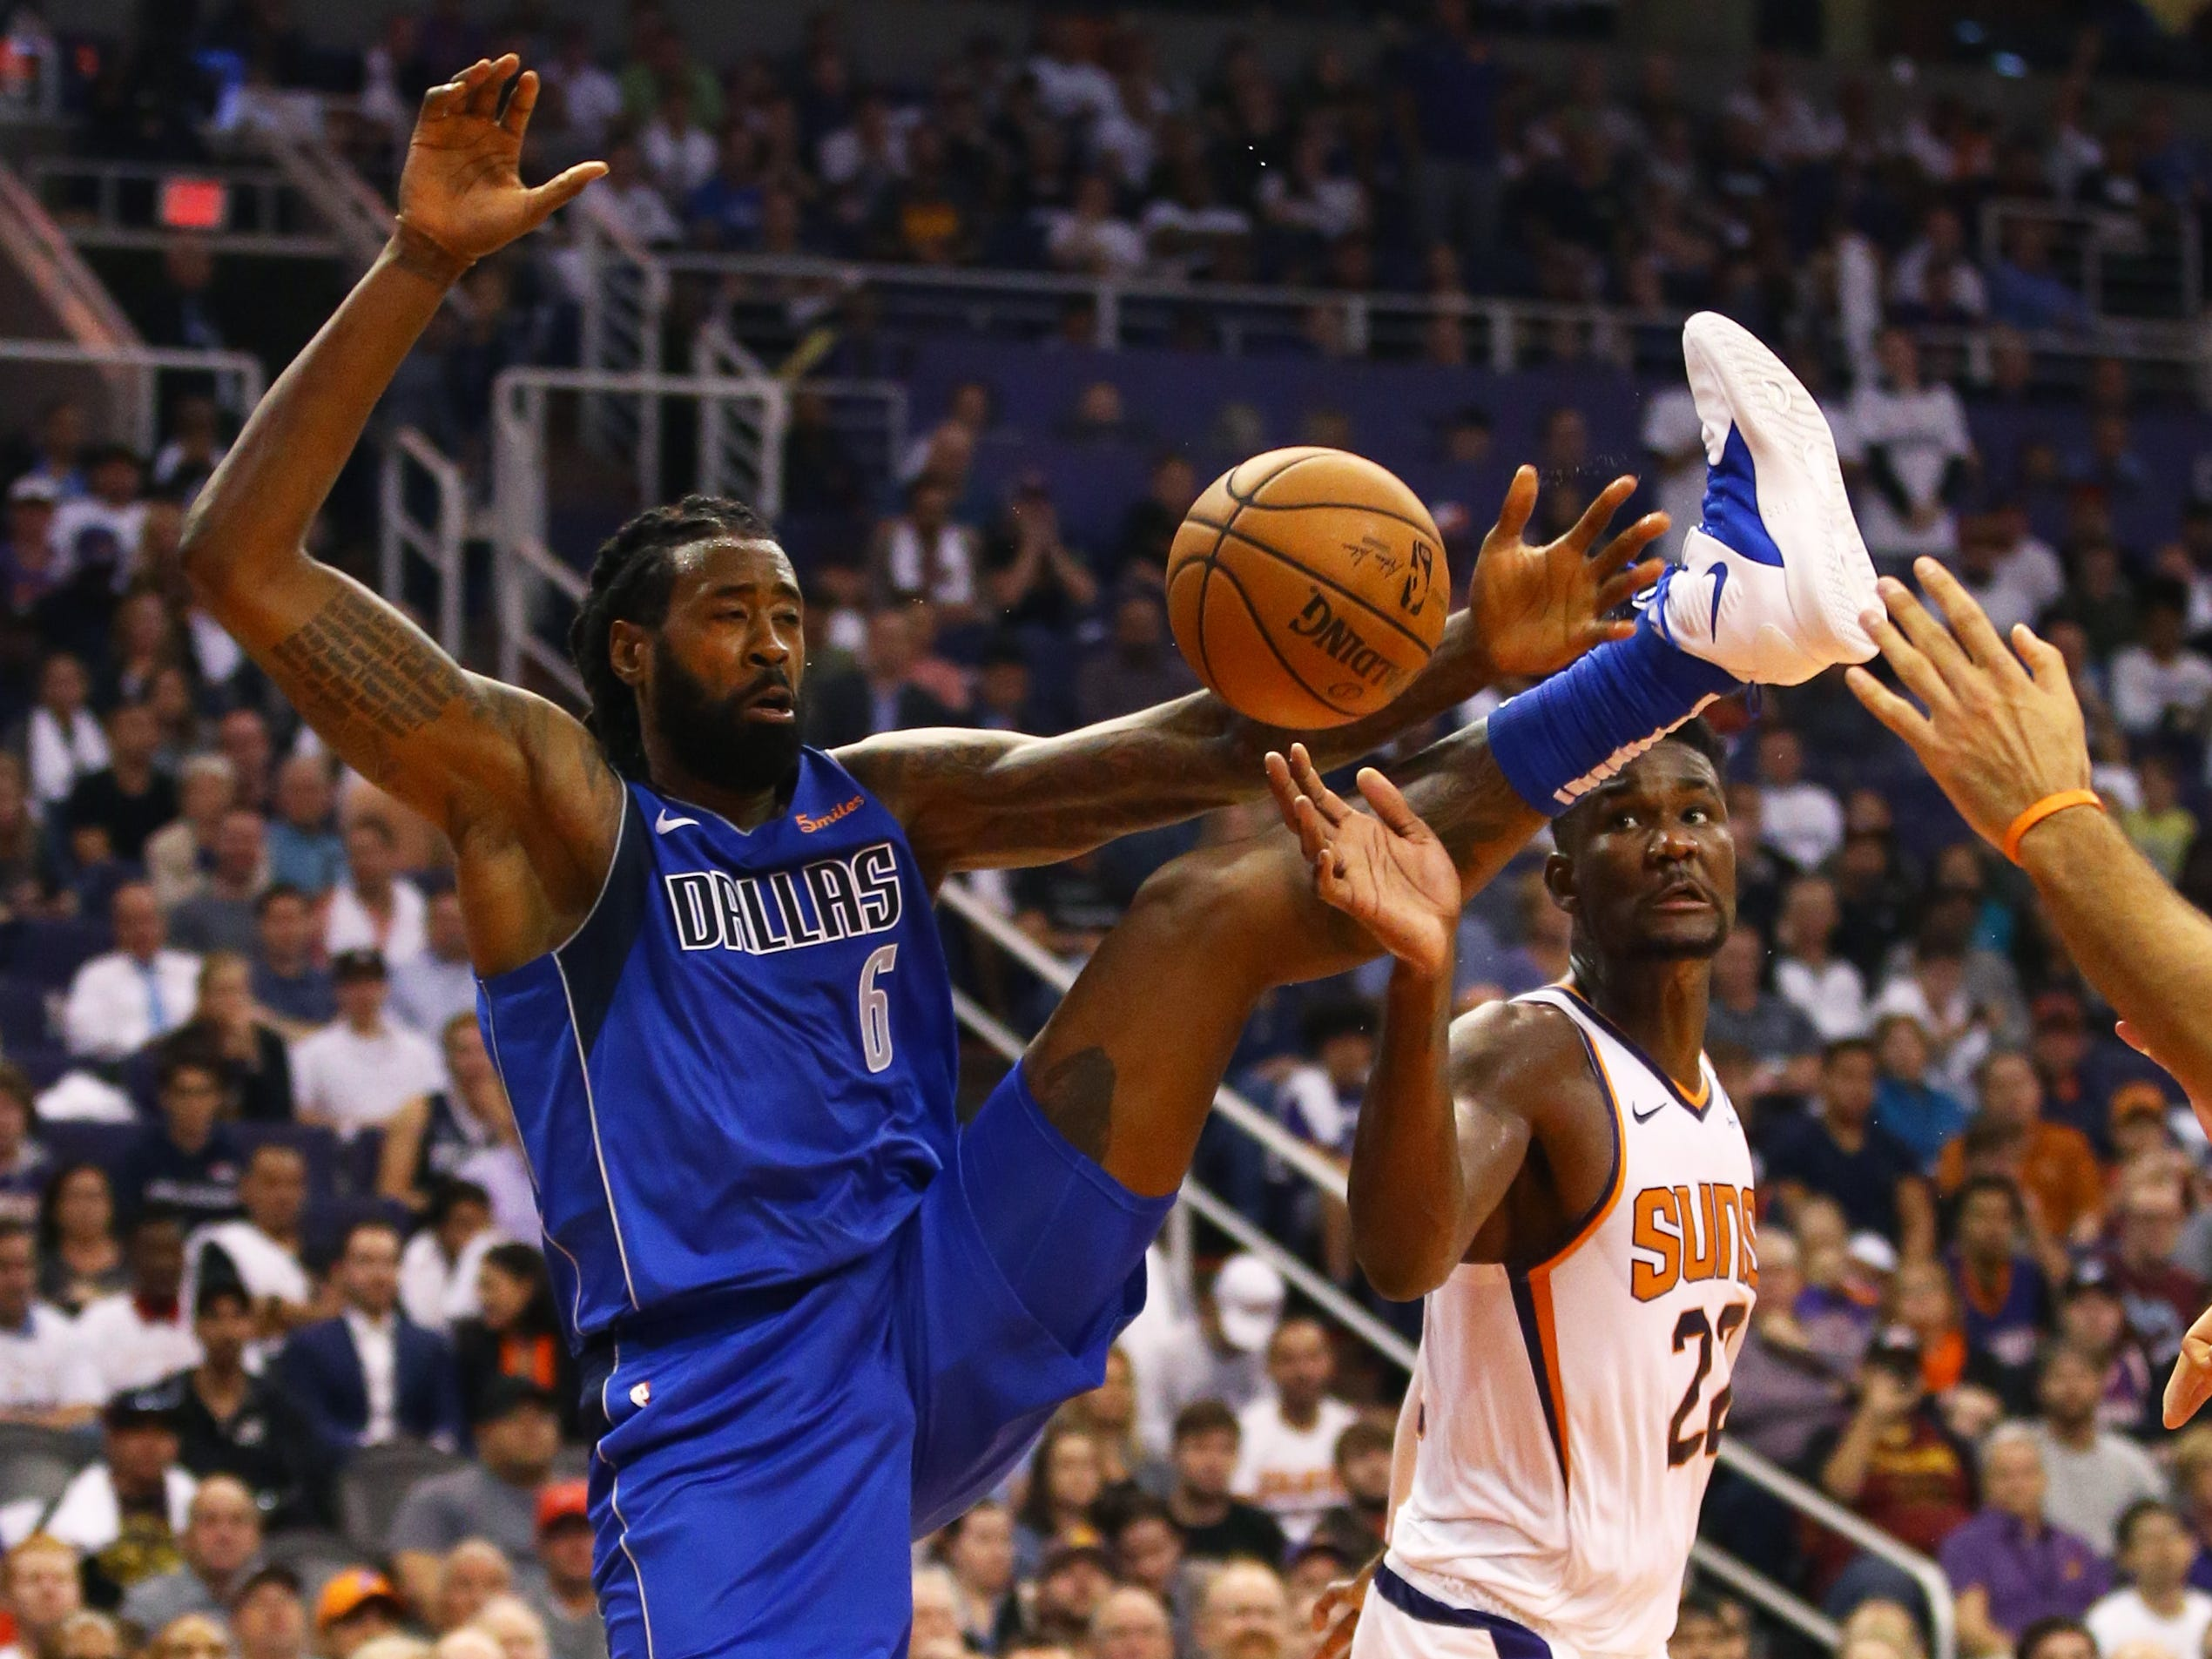 Oct. 17: Dallas Mavericks center DeAndre Jordan (6) battles for a rebound against Phoenix Suns center Deandre Ayton (22) in the second half at Talking Stick Resort Arena.